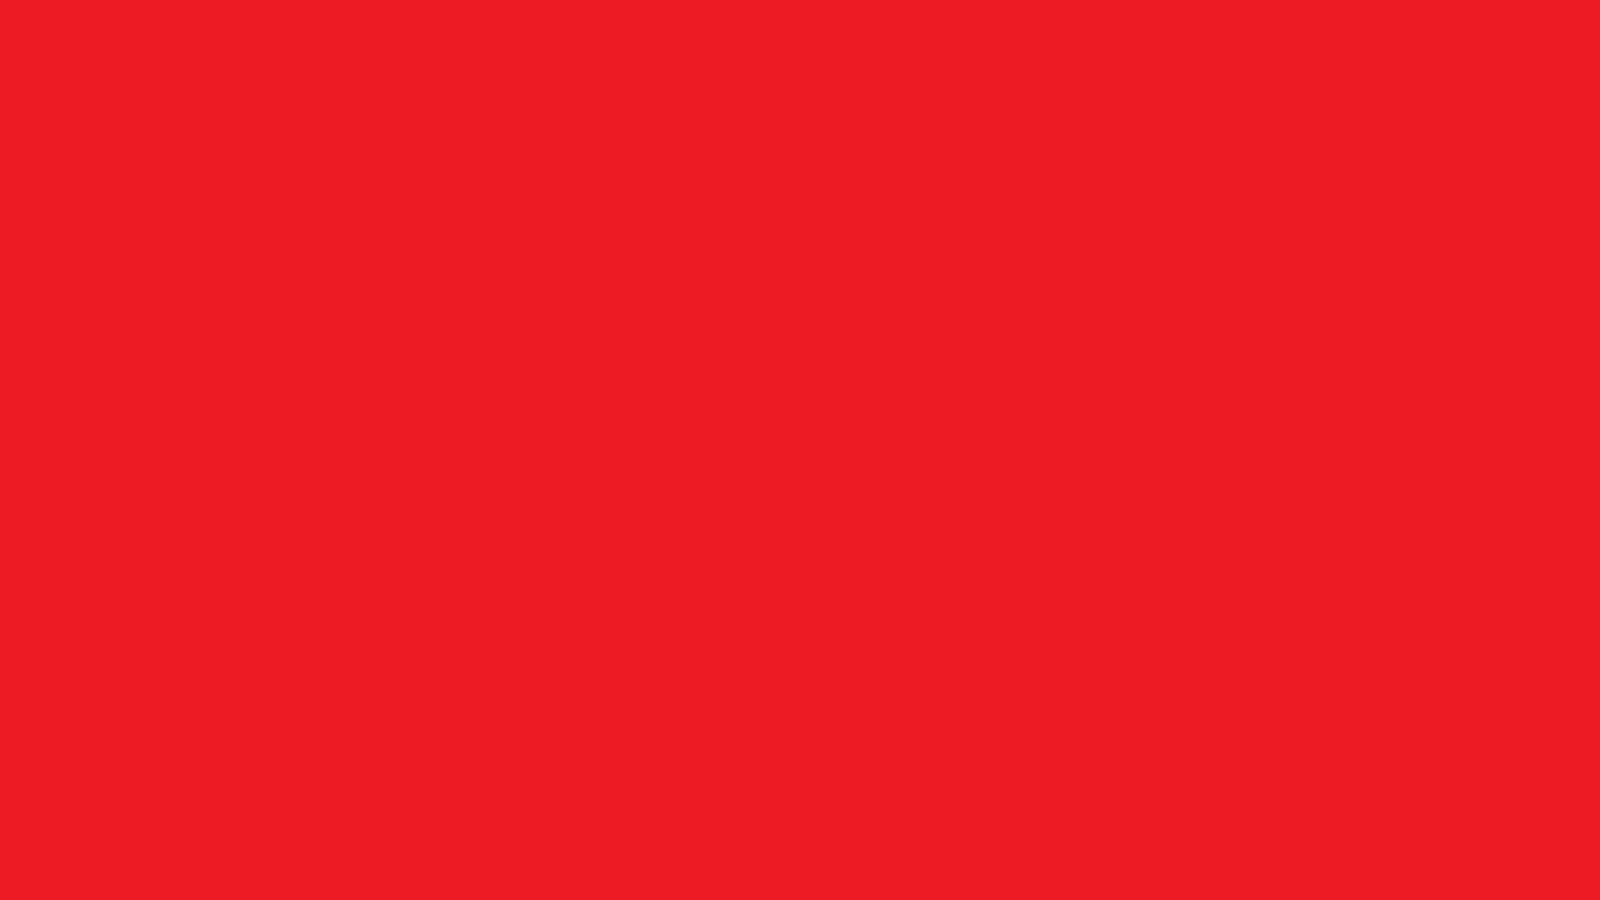 1600x900 Red Pigment Solid Color Background